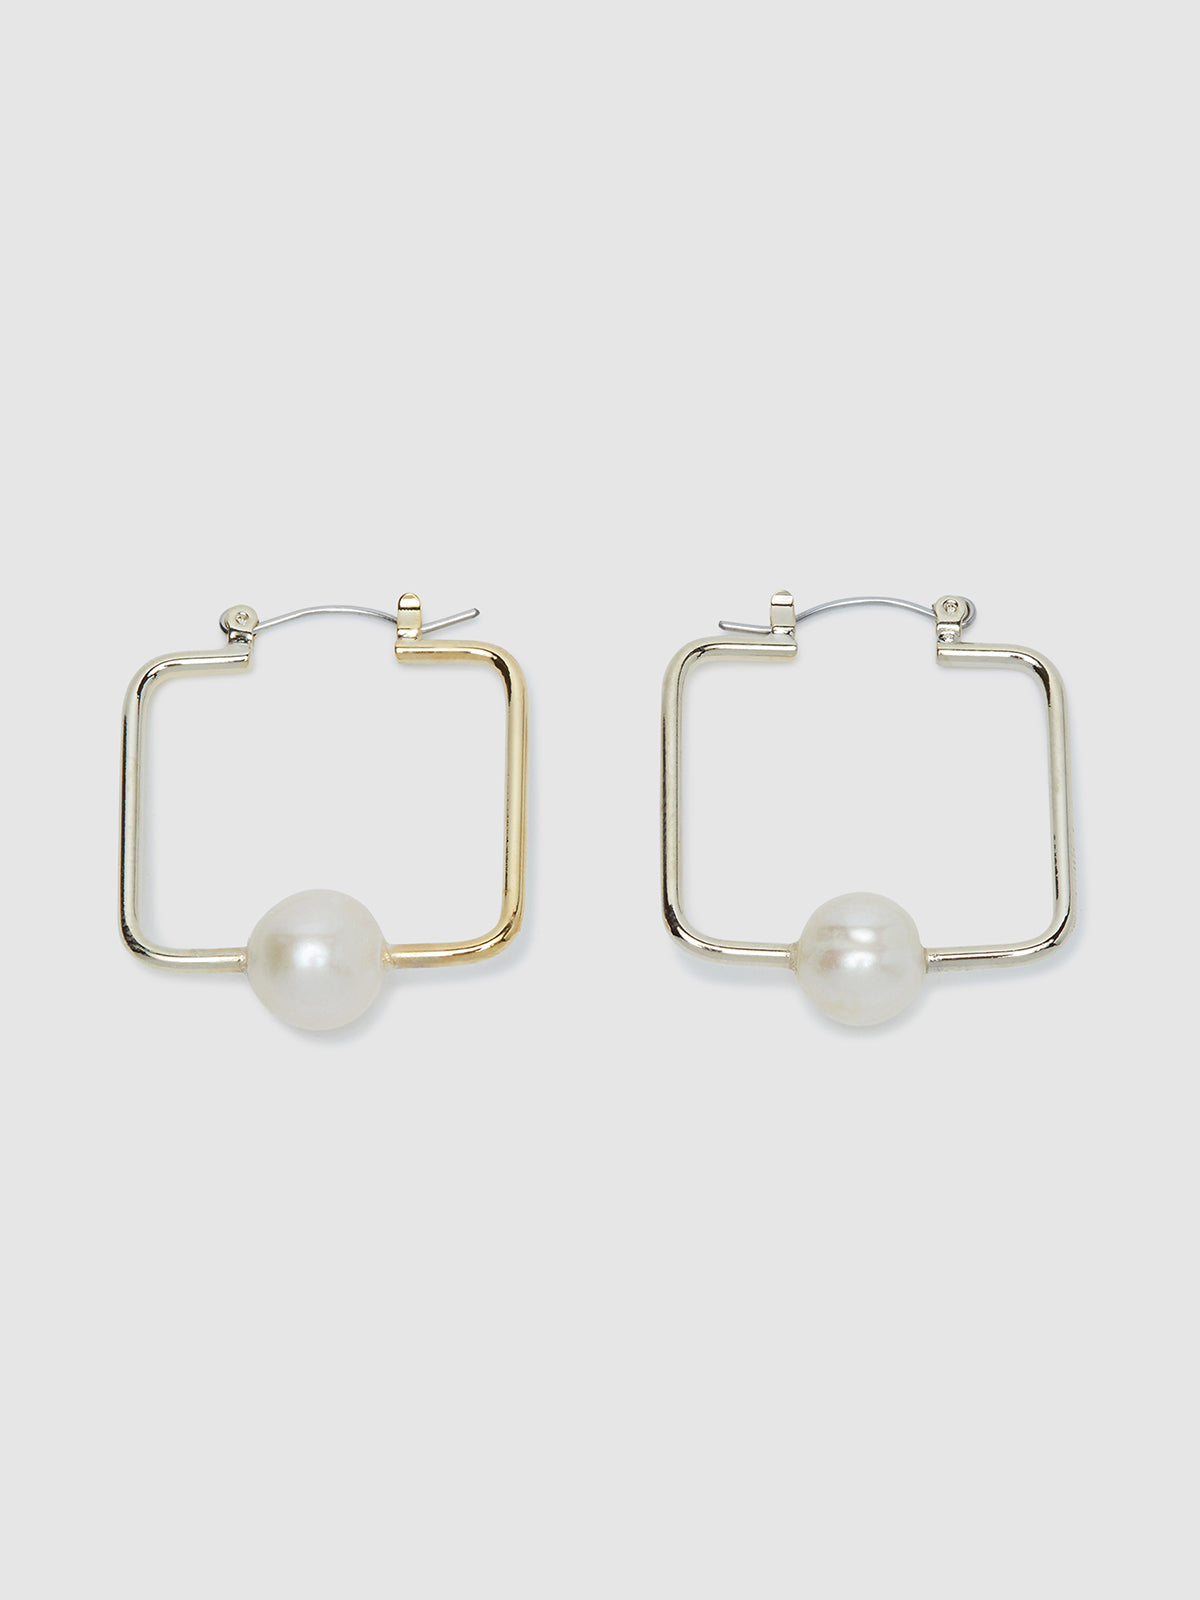 BONITA SQUARE PEARL EARRINGS PALE GOLD/PEARL